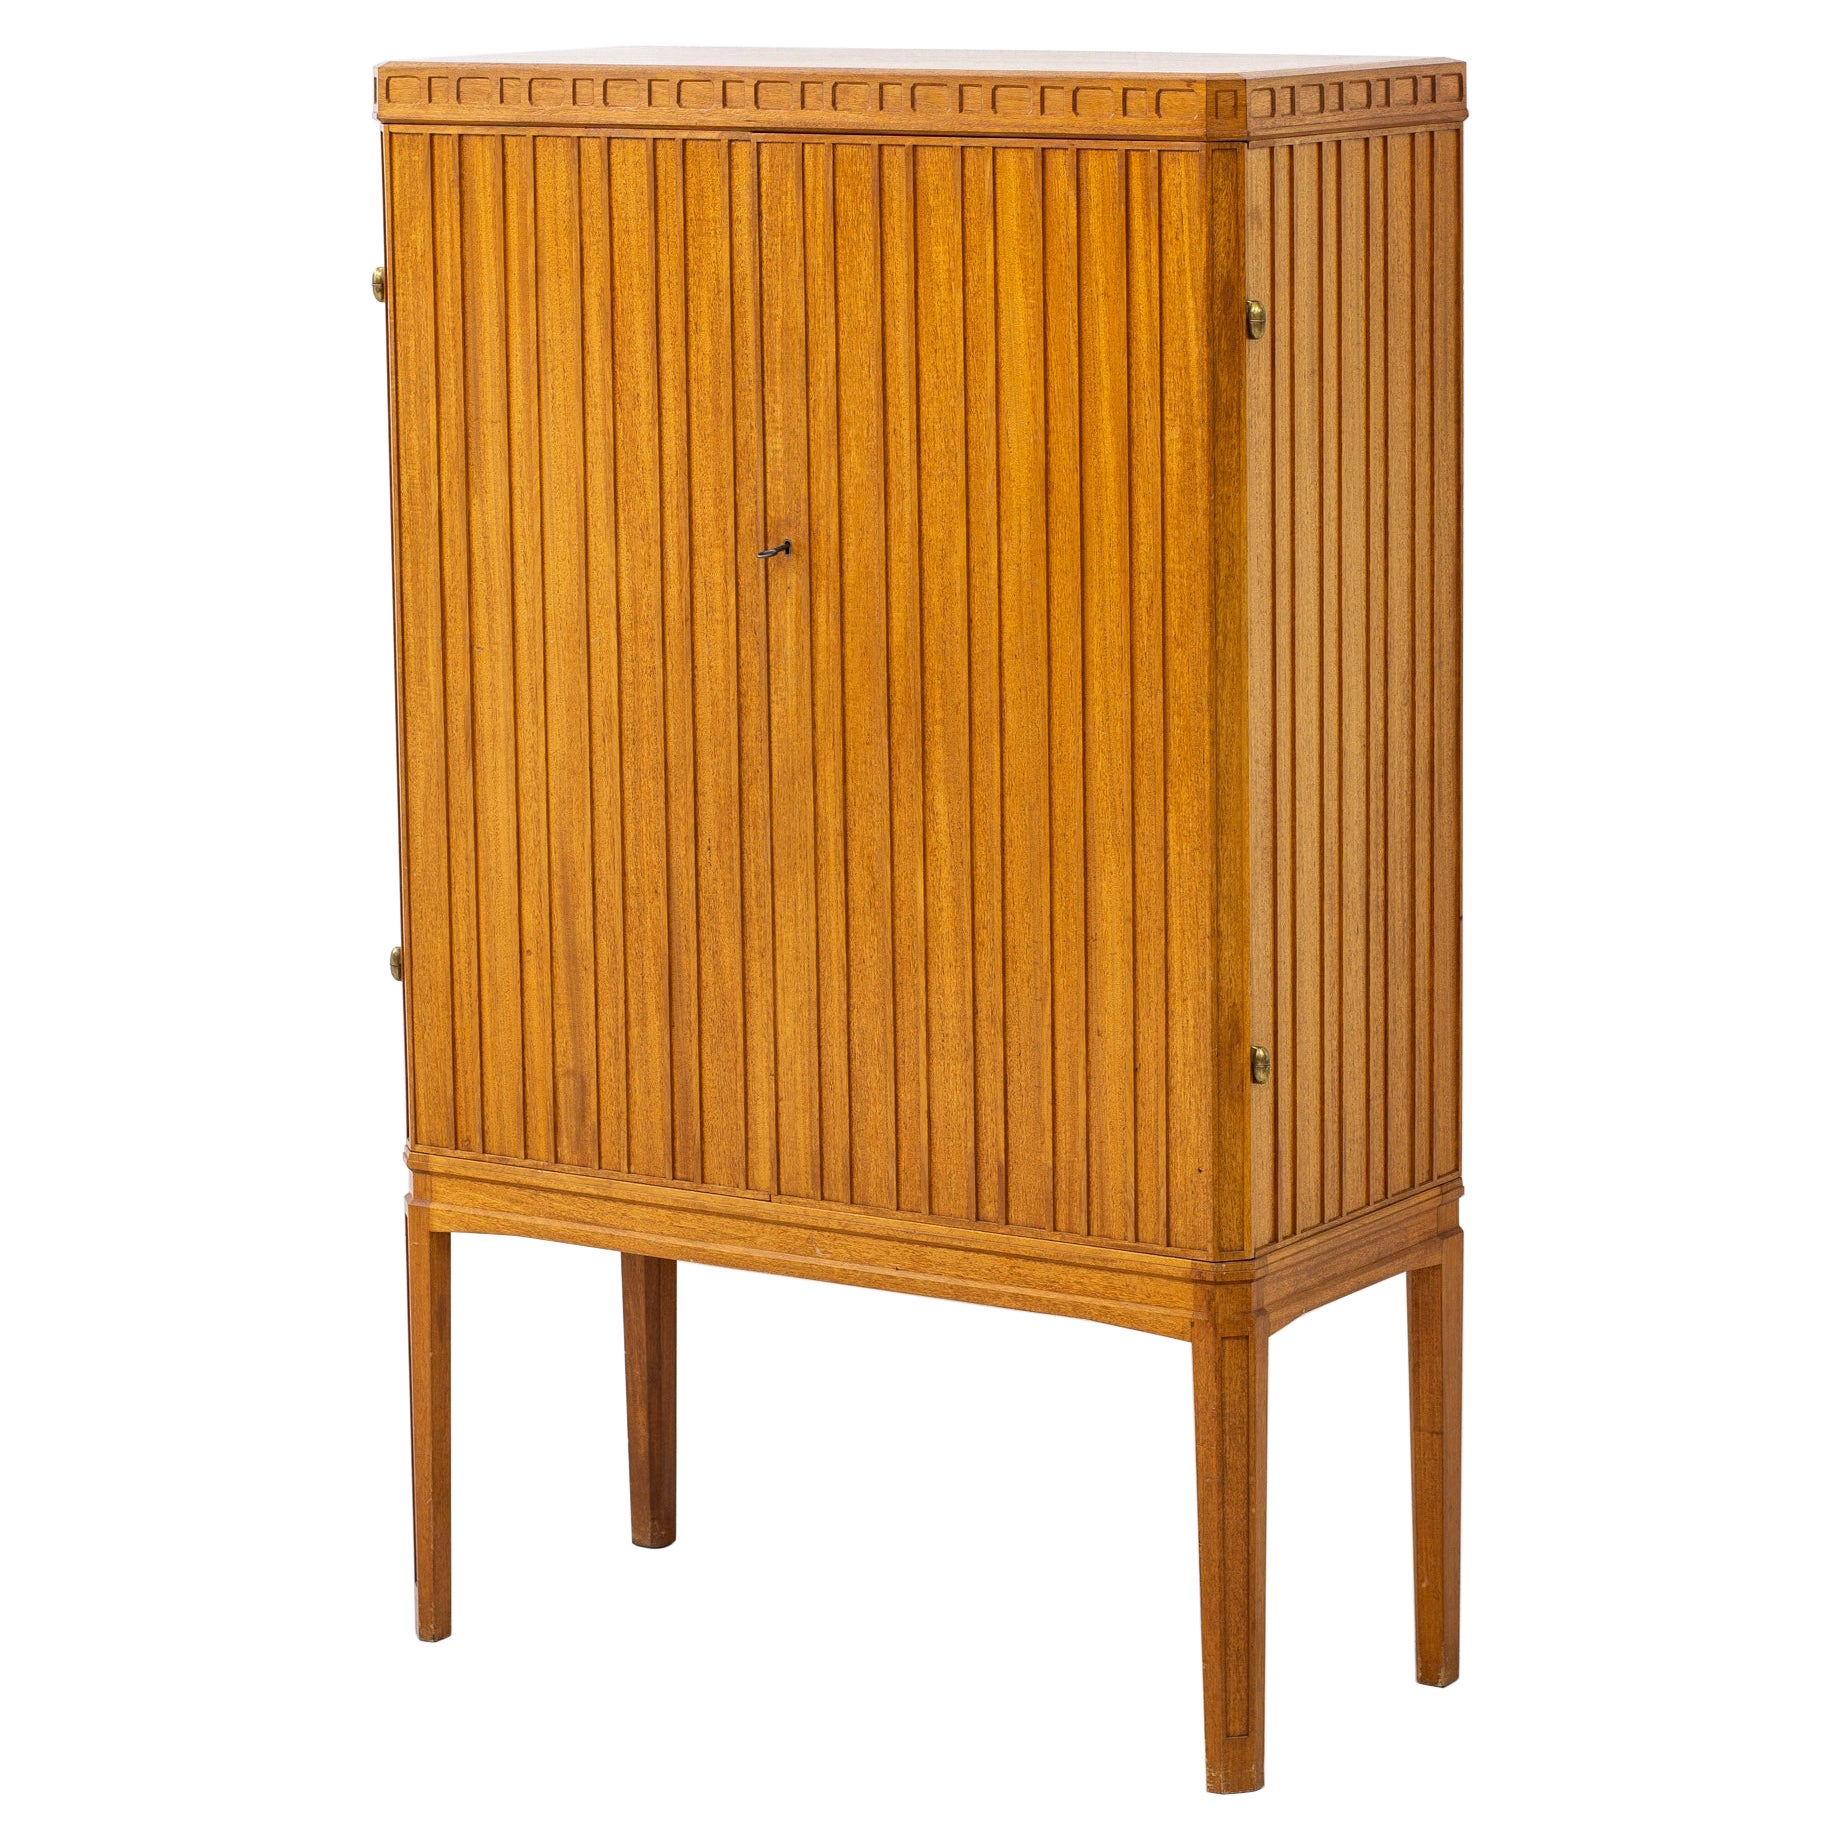 1940s Swedish Modern Cabinet in the Style of Oscar Nilsson